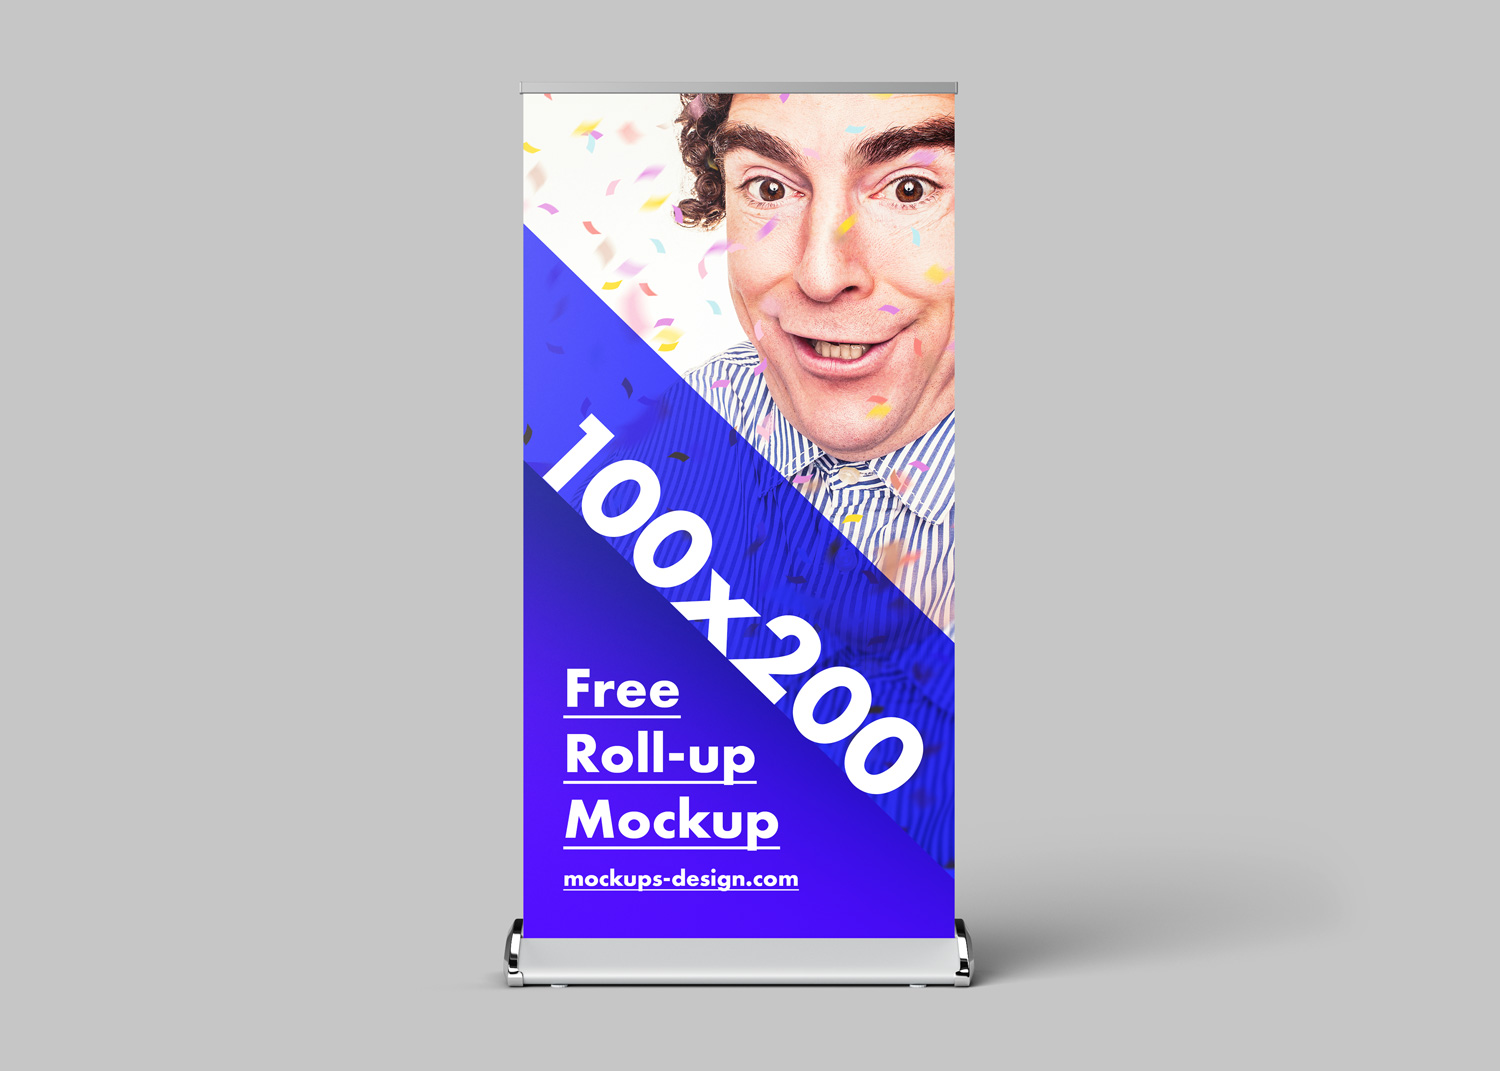 Free-Roll-Up-Mockup-02